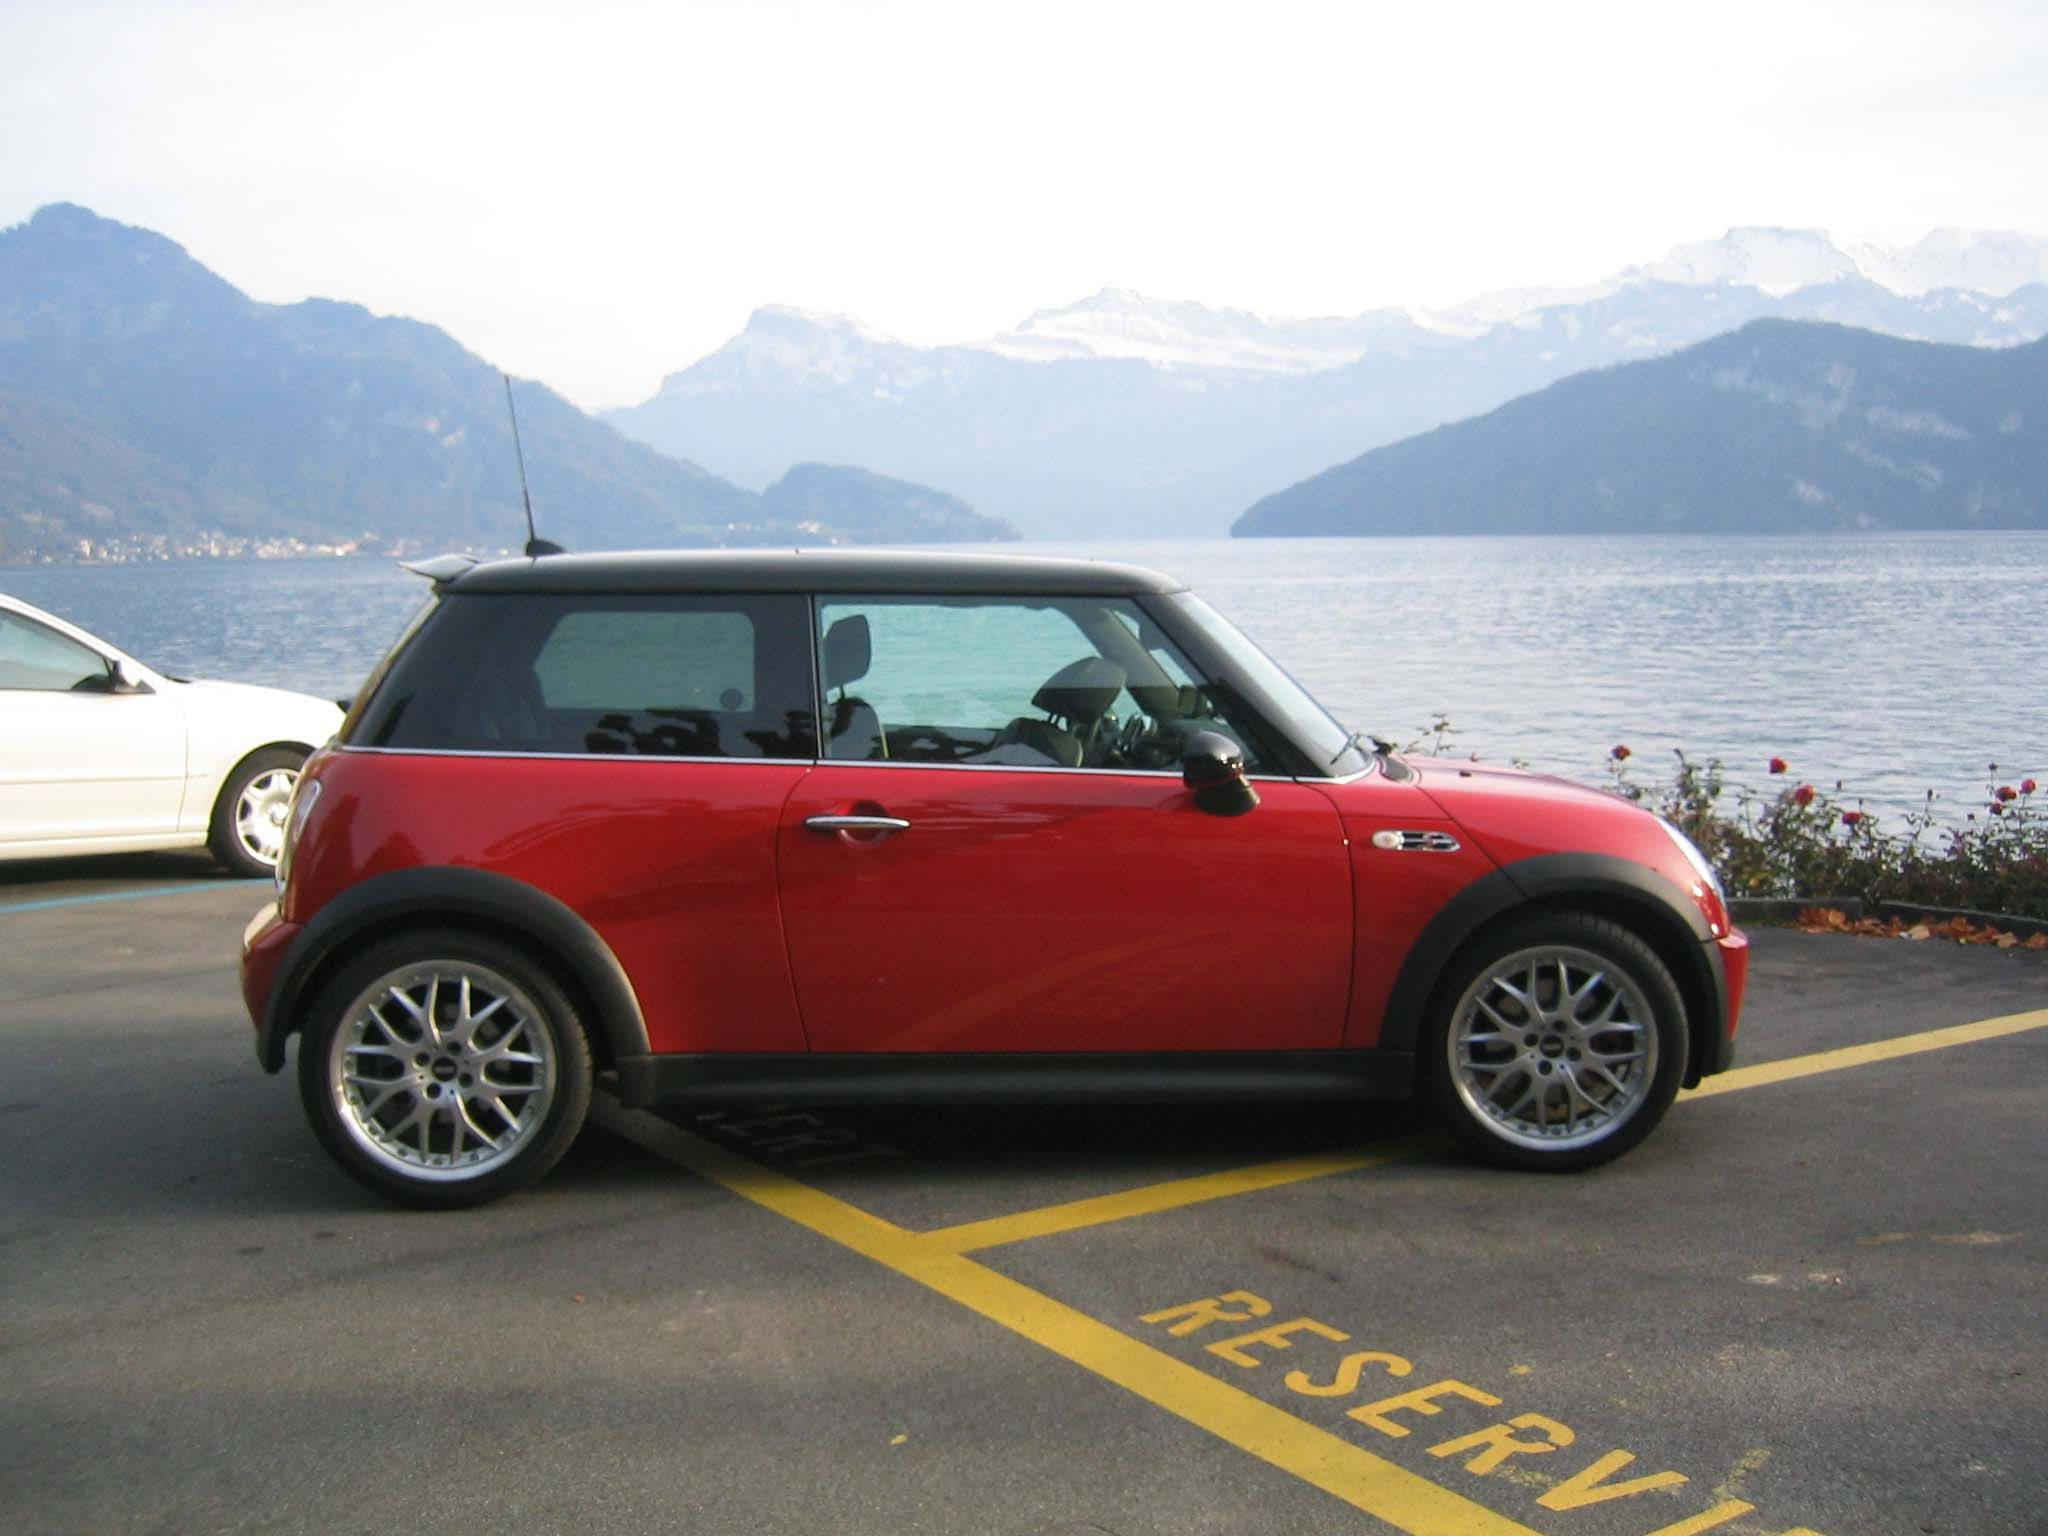 Mini cooper s chili with factory jcw model at 210 hp december 2005 model very reluctant sale change of plans so we are leaving switzerland